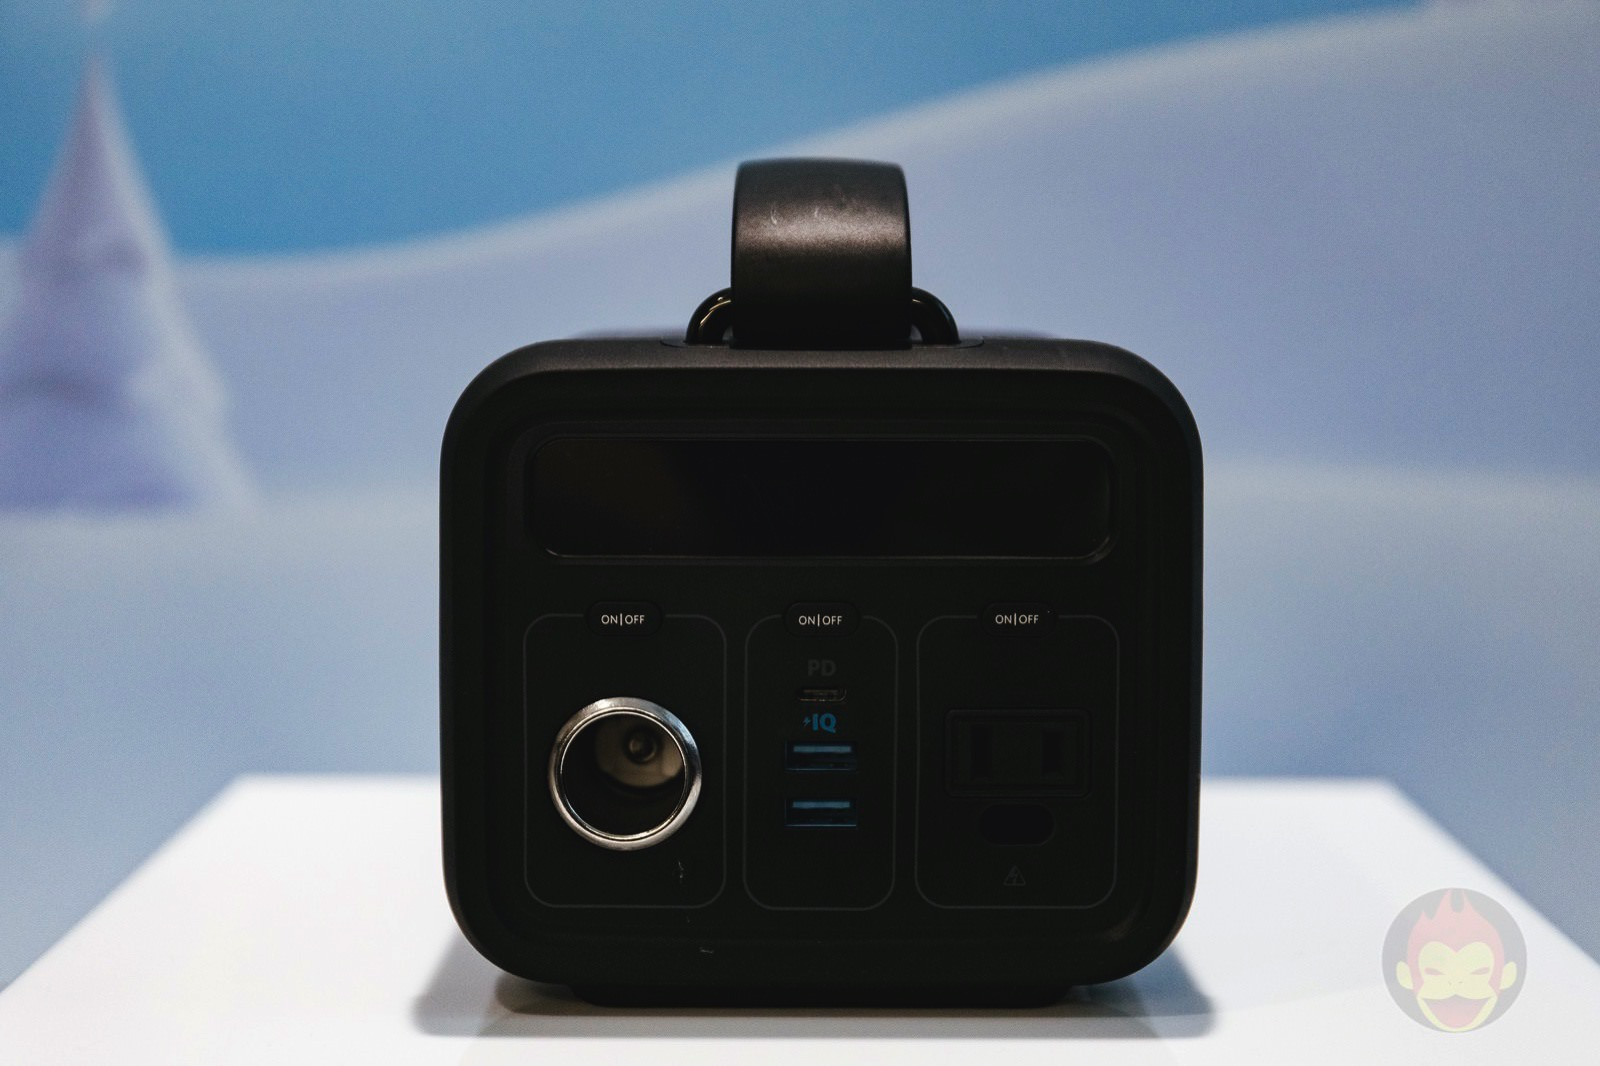 Anker-Press-Conference-2018-New-Products-21.jpg